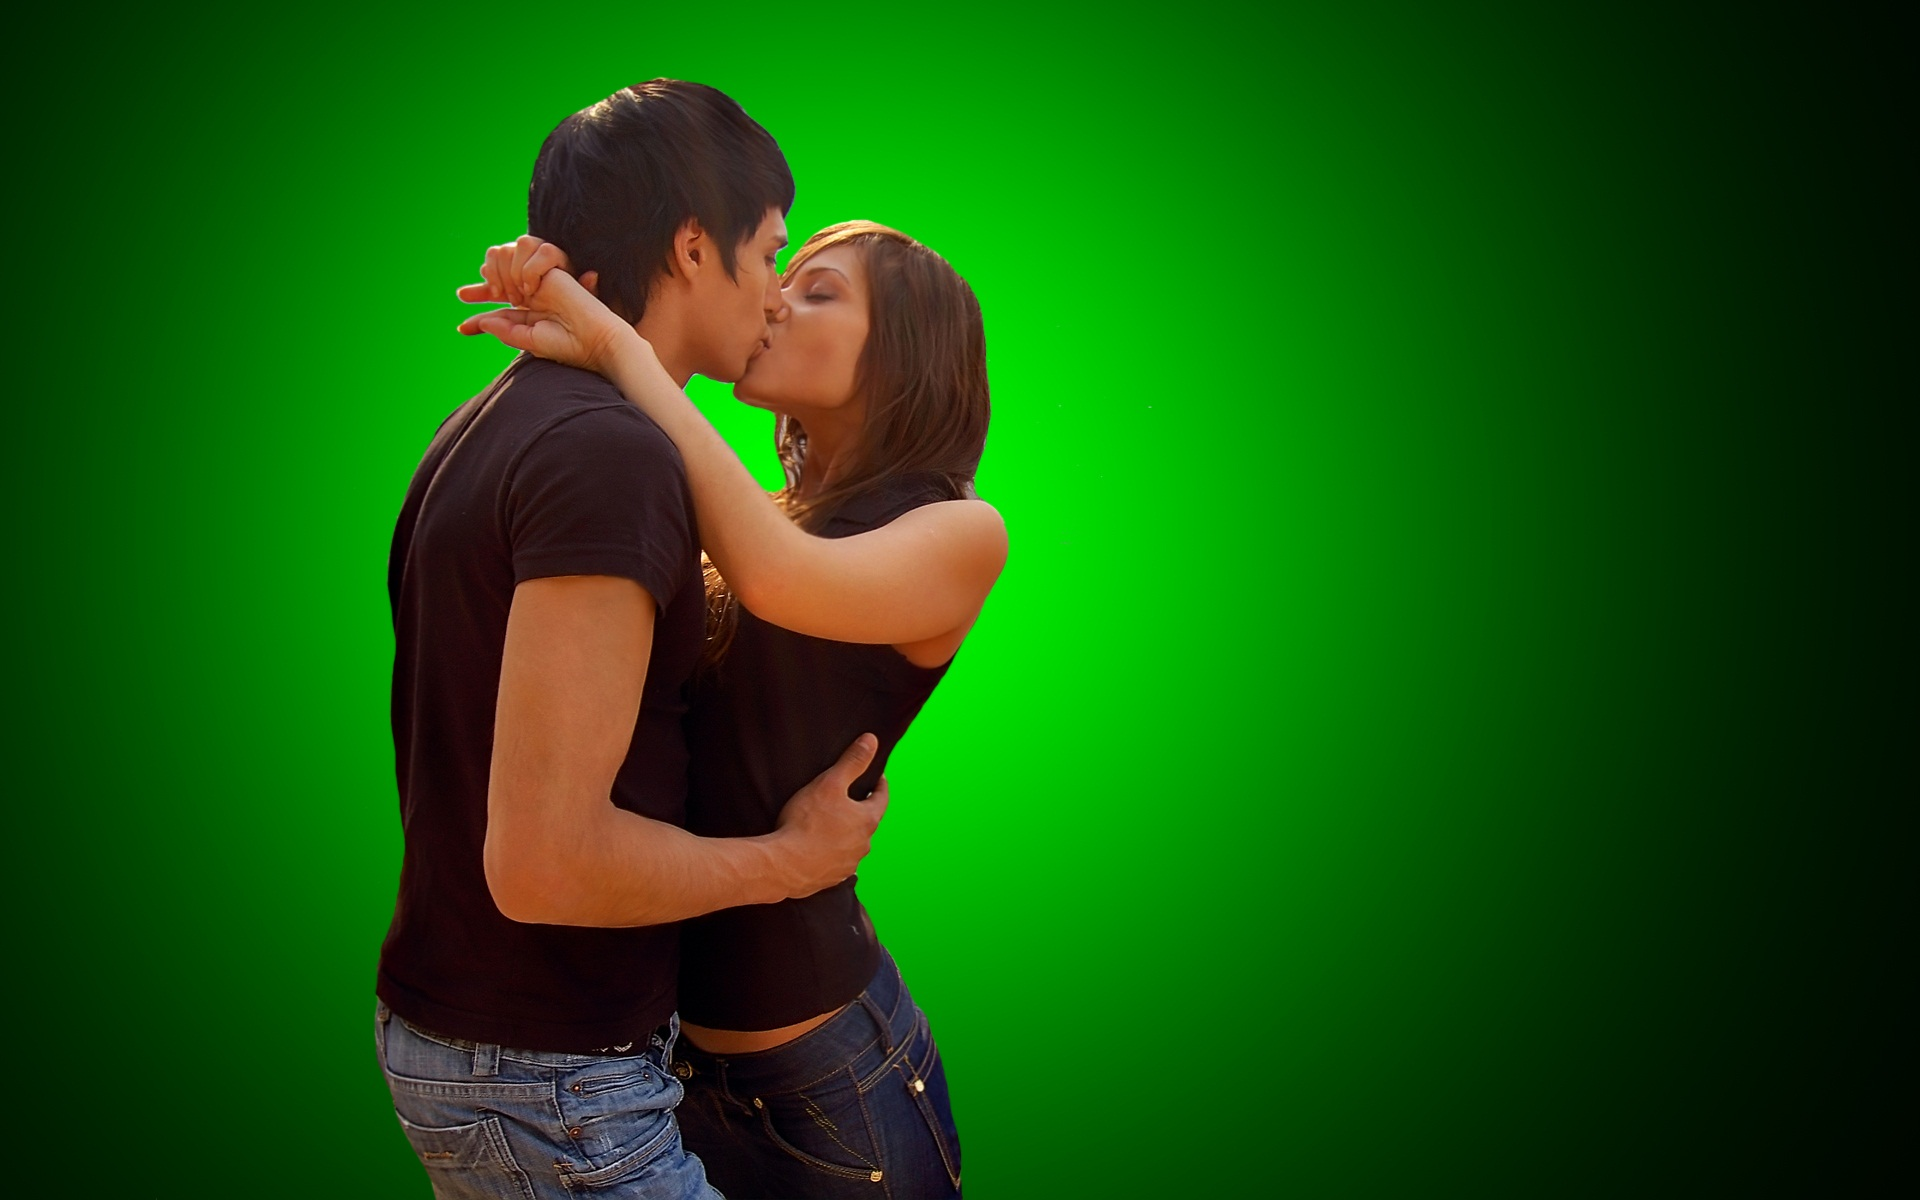 stylish hot couple kissing - photo #7